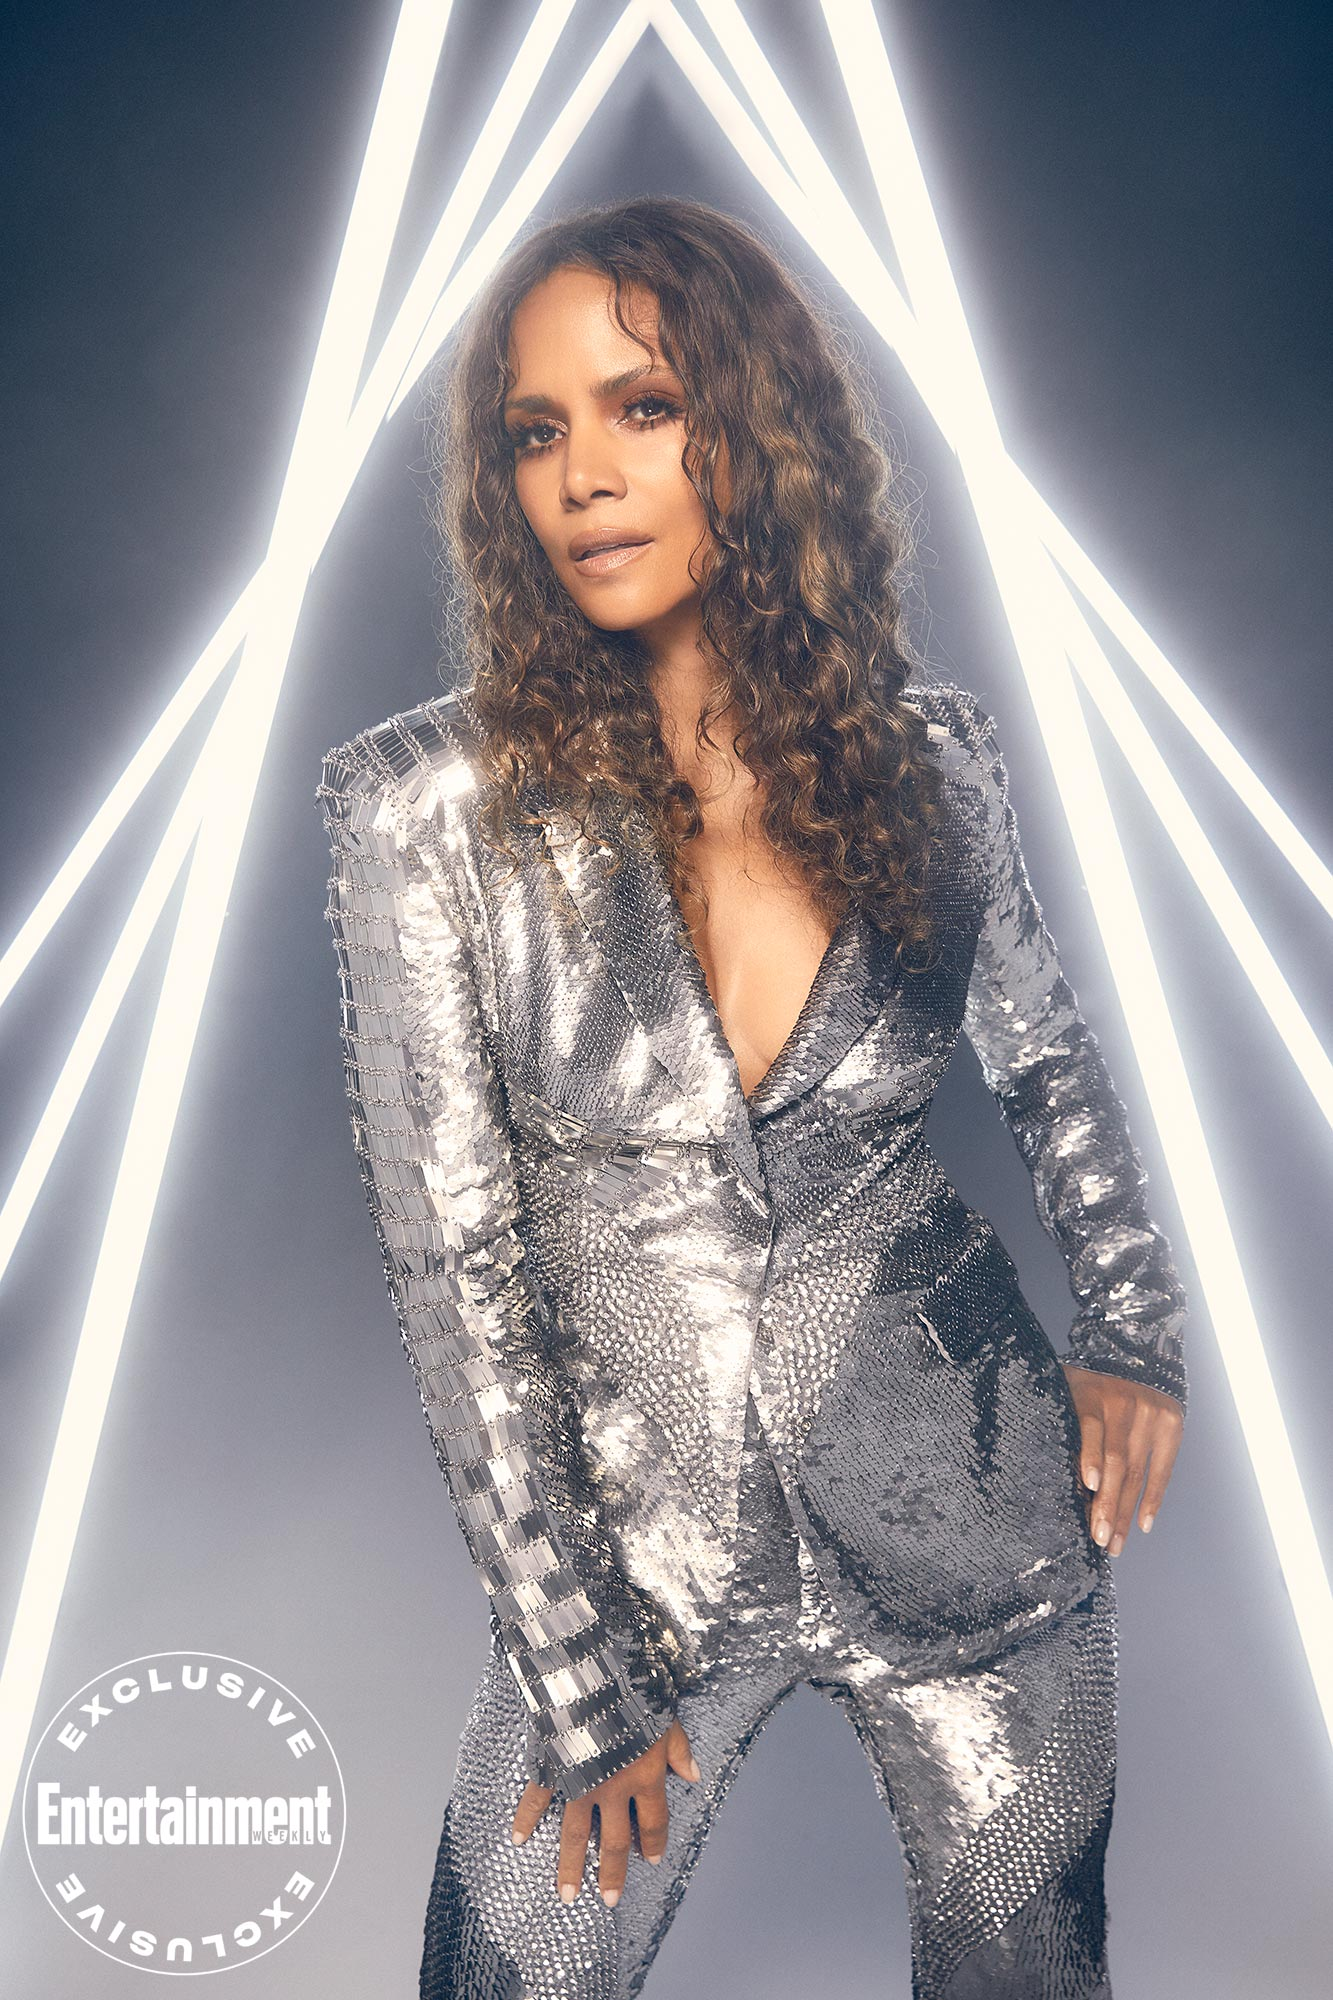 Halle Berry September 2021 Cover